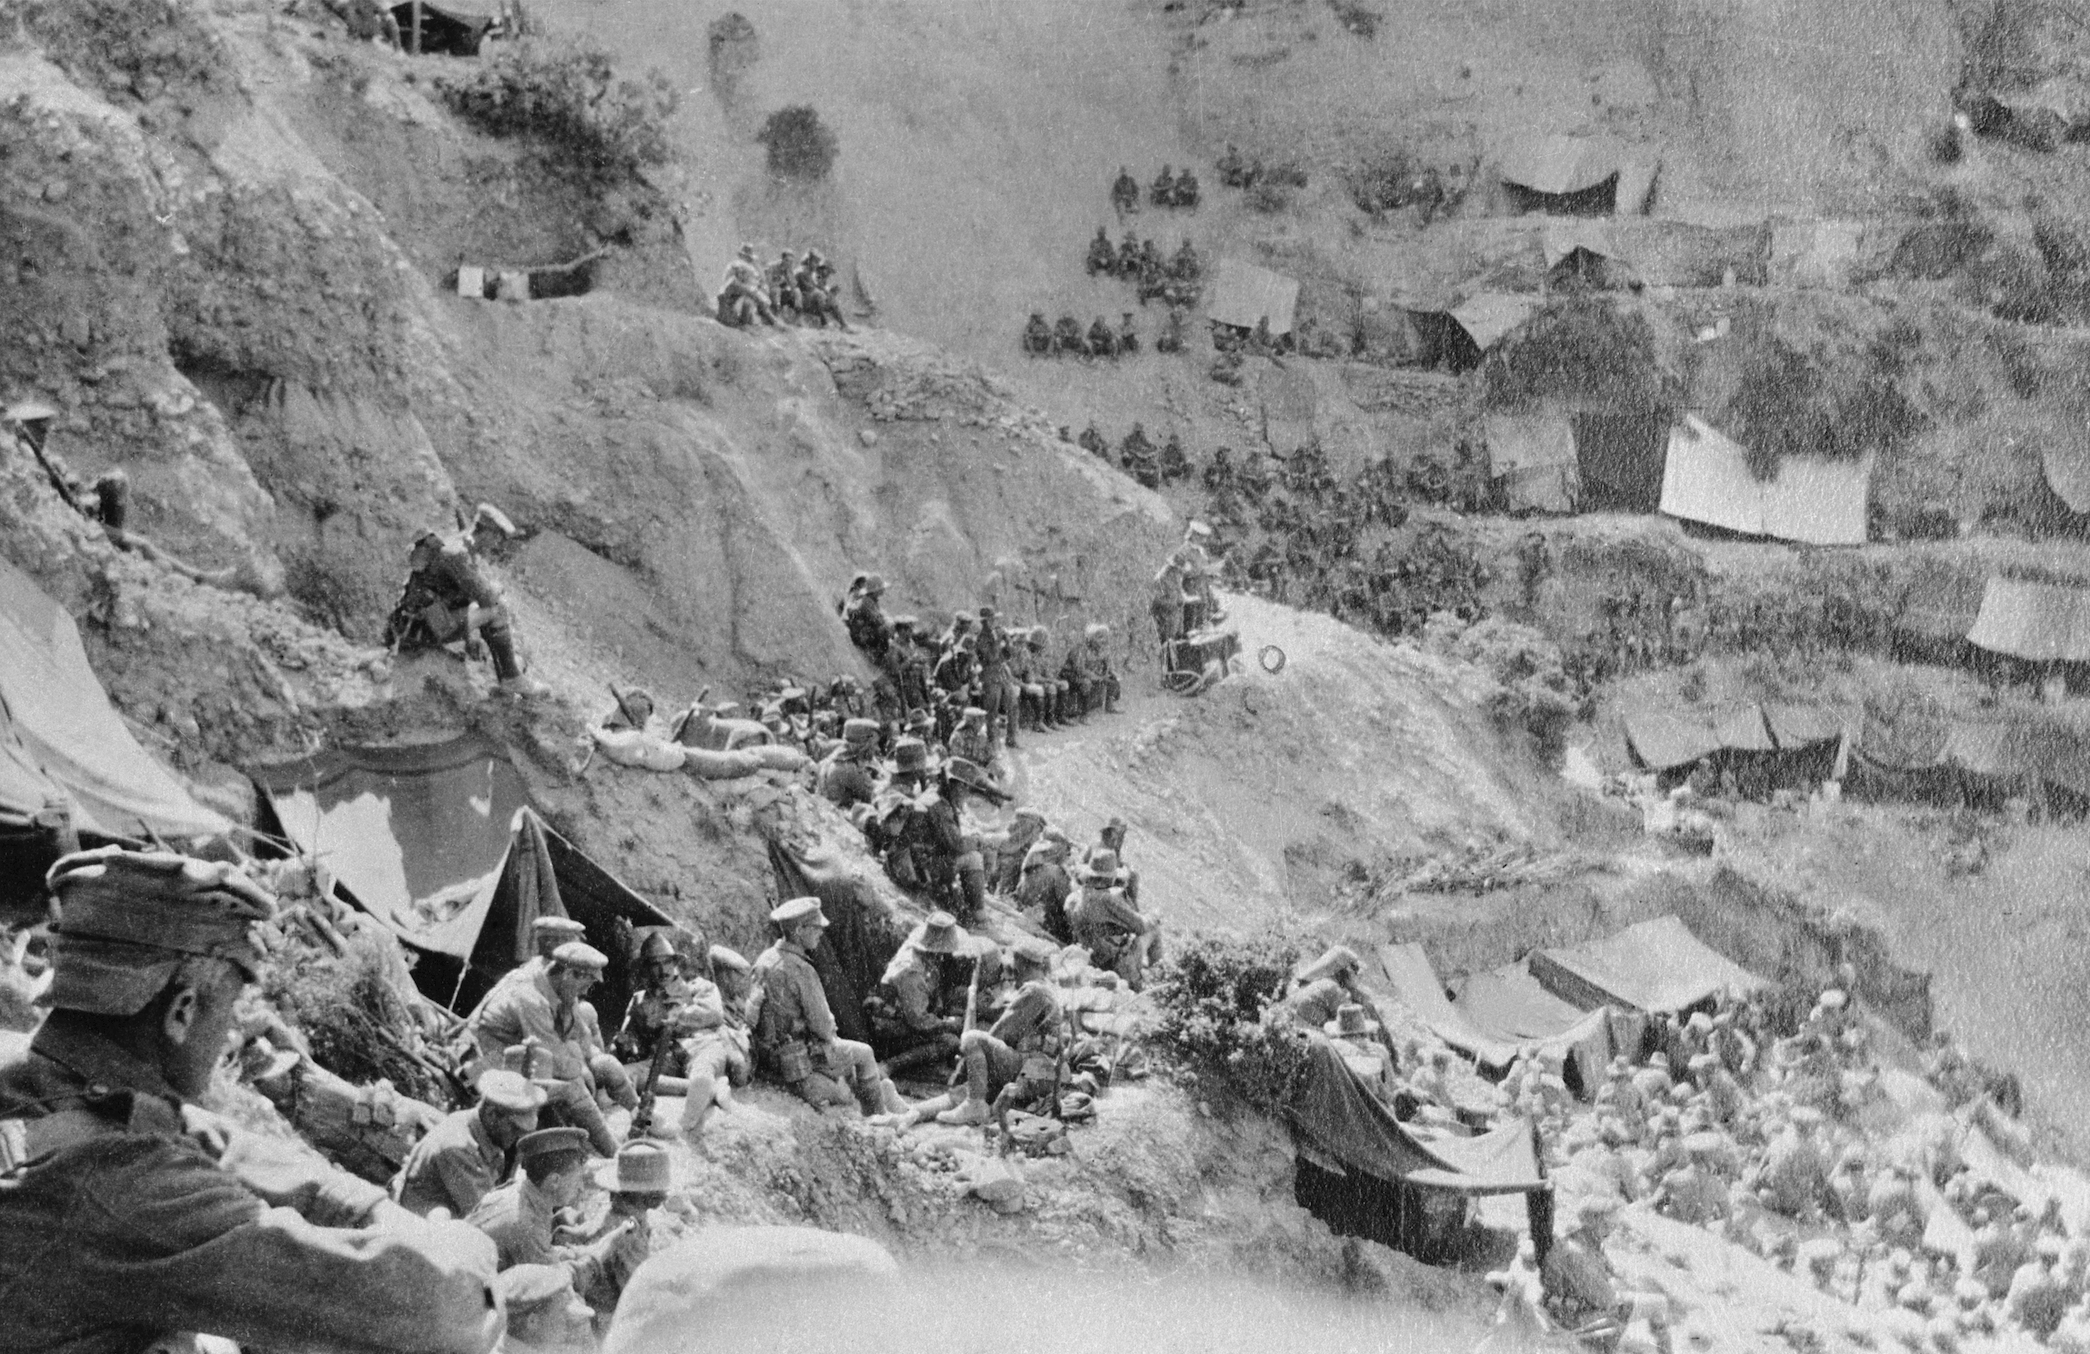 Soldiers attending a church service in Reserve Gully in Gallipoli, being conducted by Chaplain Gillison